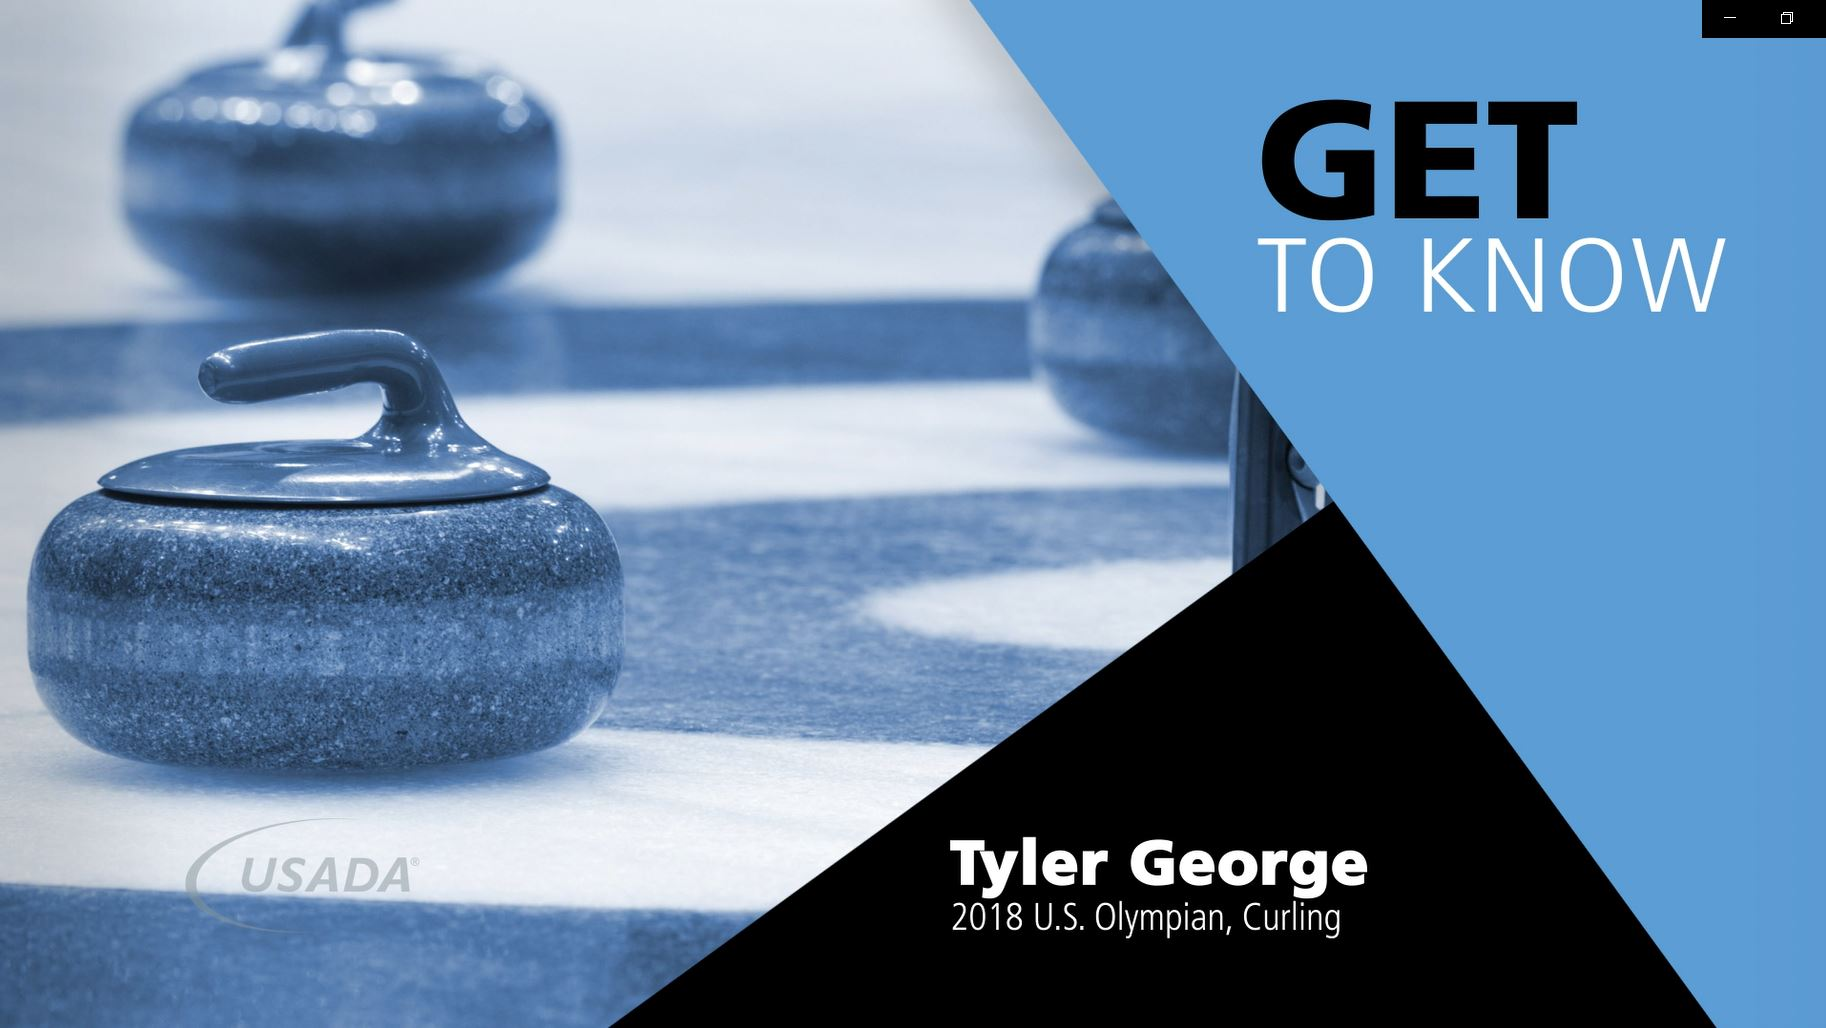 Get to Know Tyler George 2018 U.S. Olympian, Curling